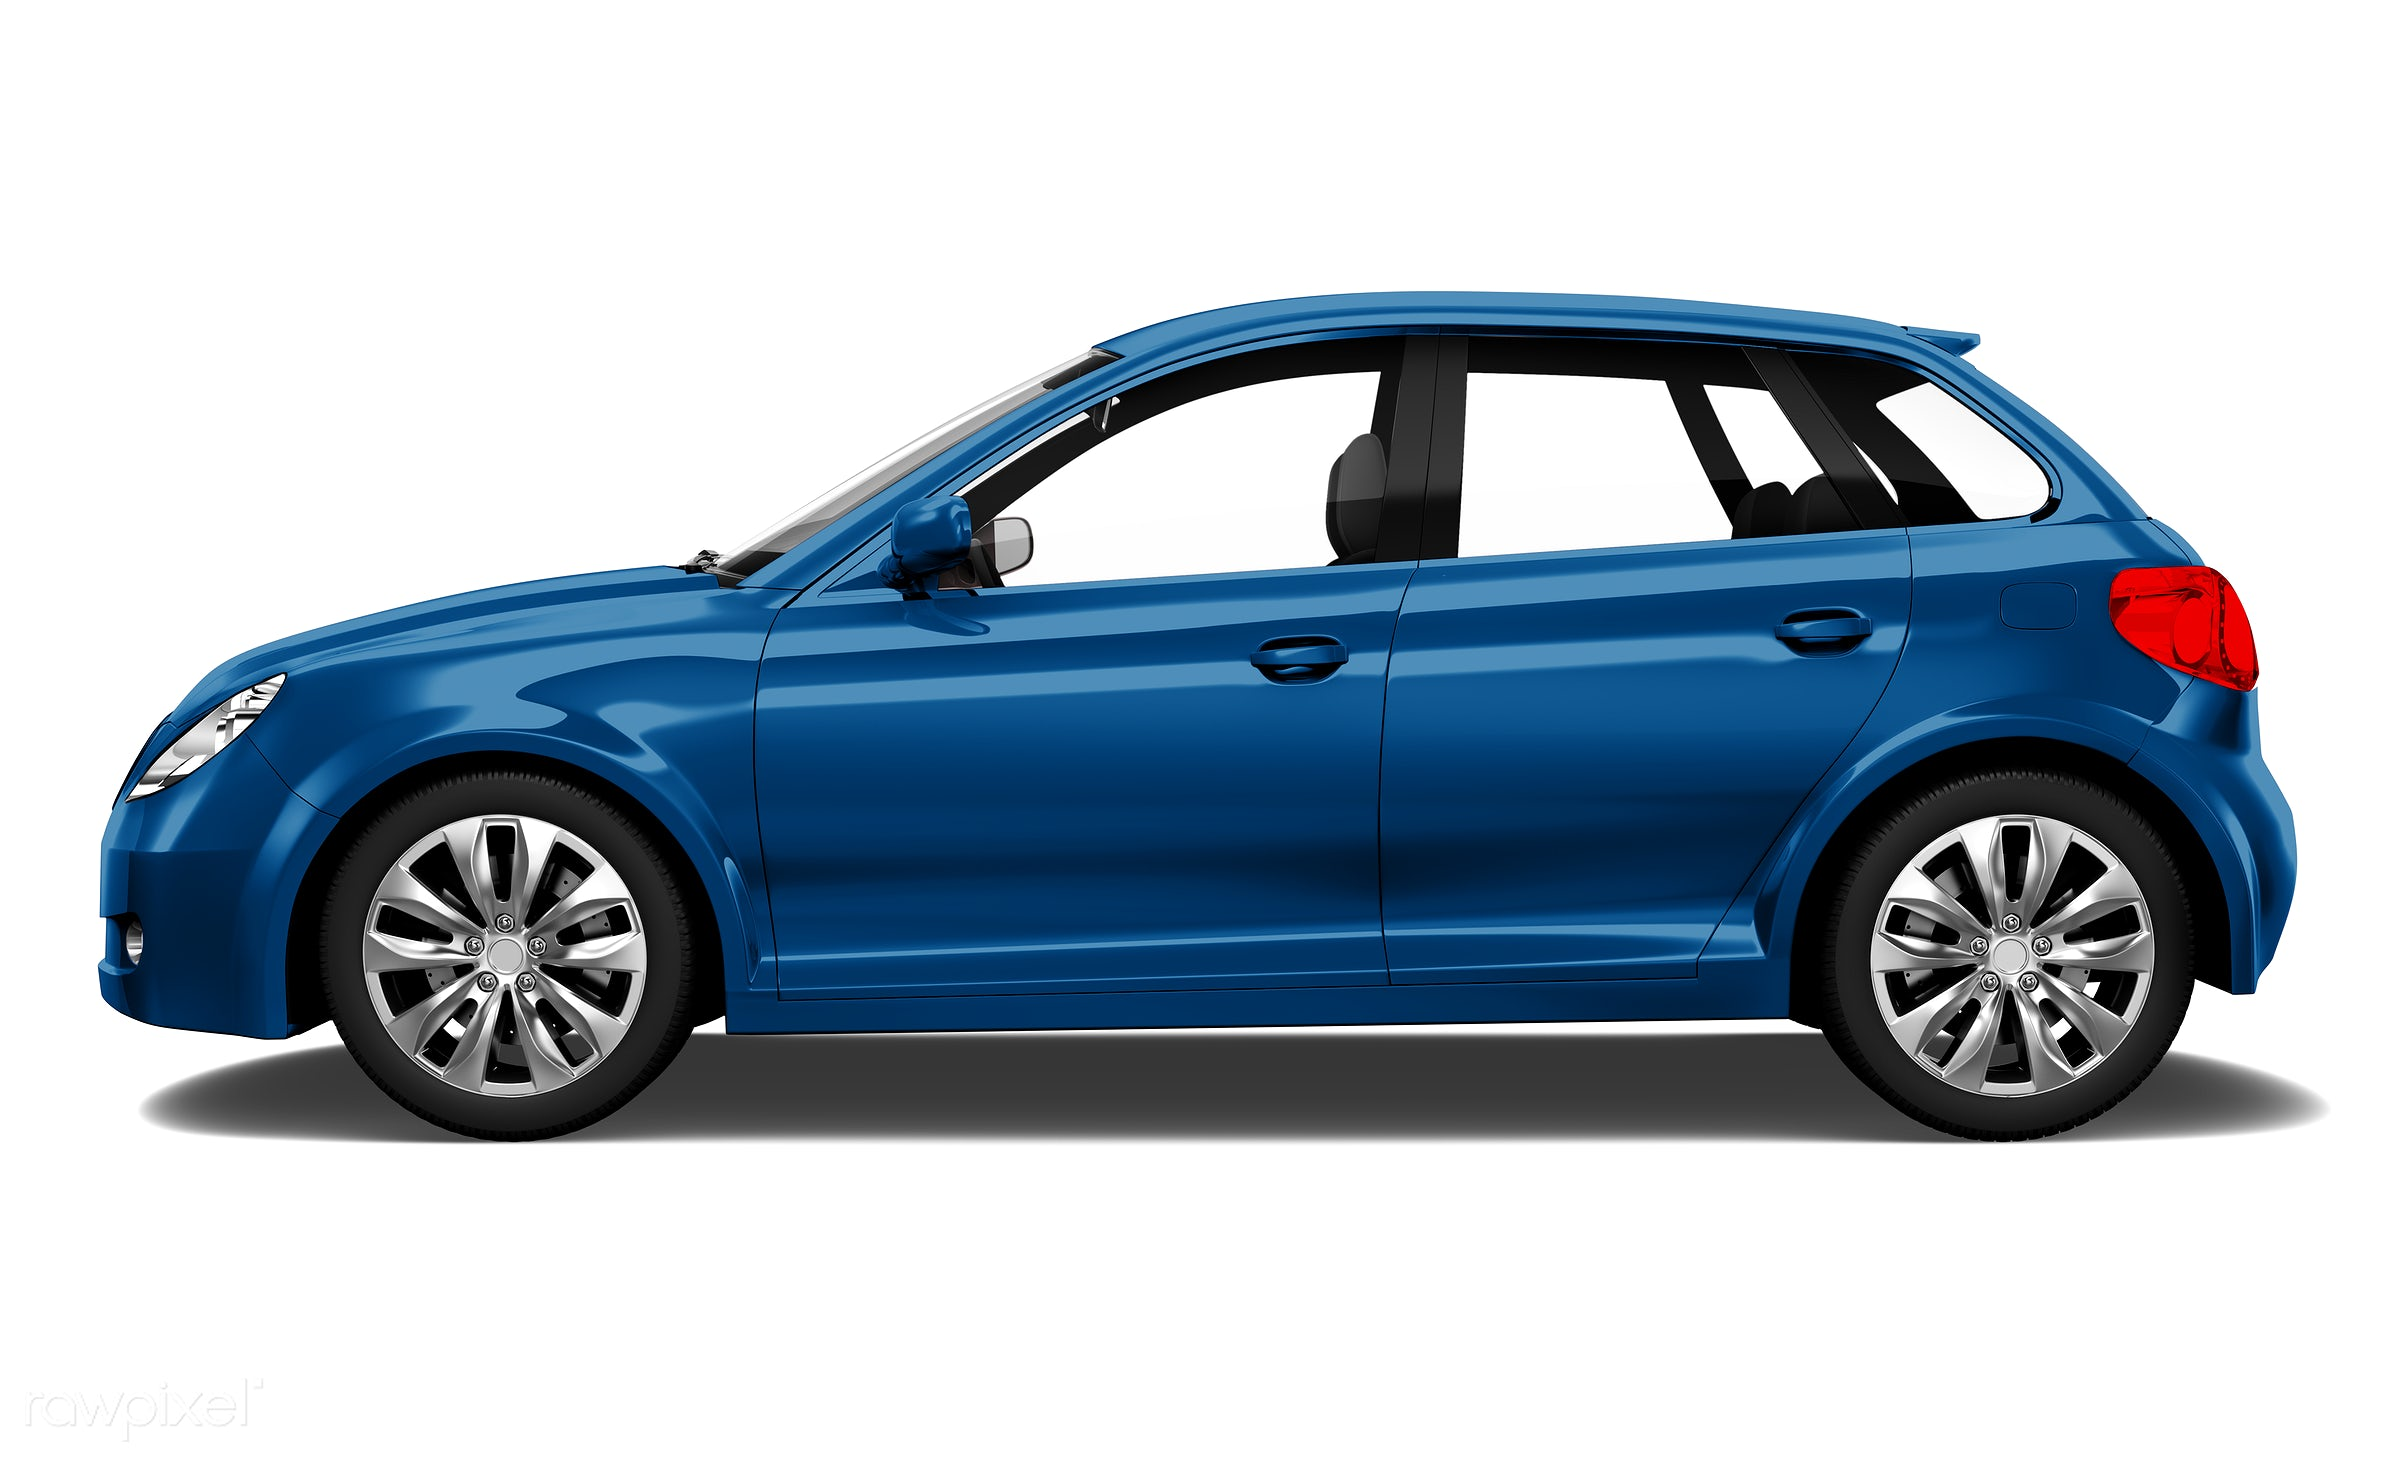 Three dimensional image of car - car, 3d, automobile, automotive, blue, brandless, concept car, graphic, hatchback, holiday...